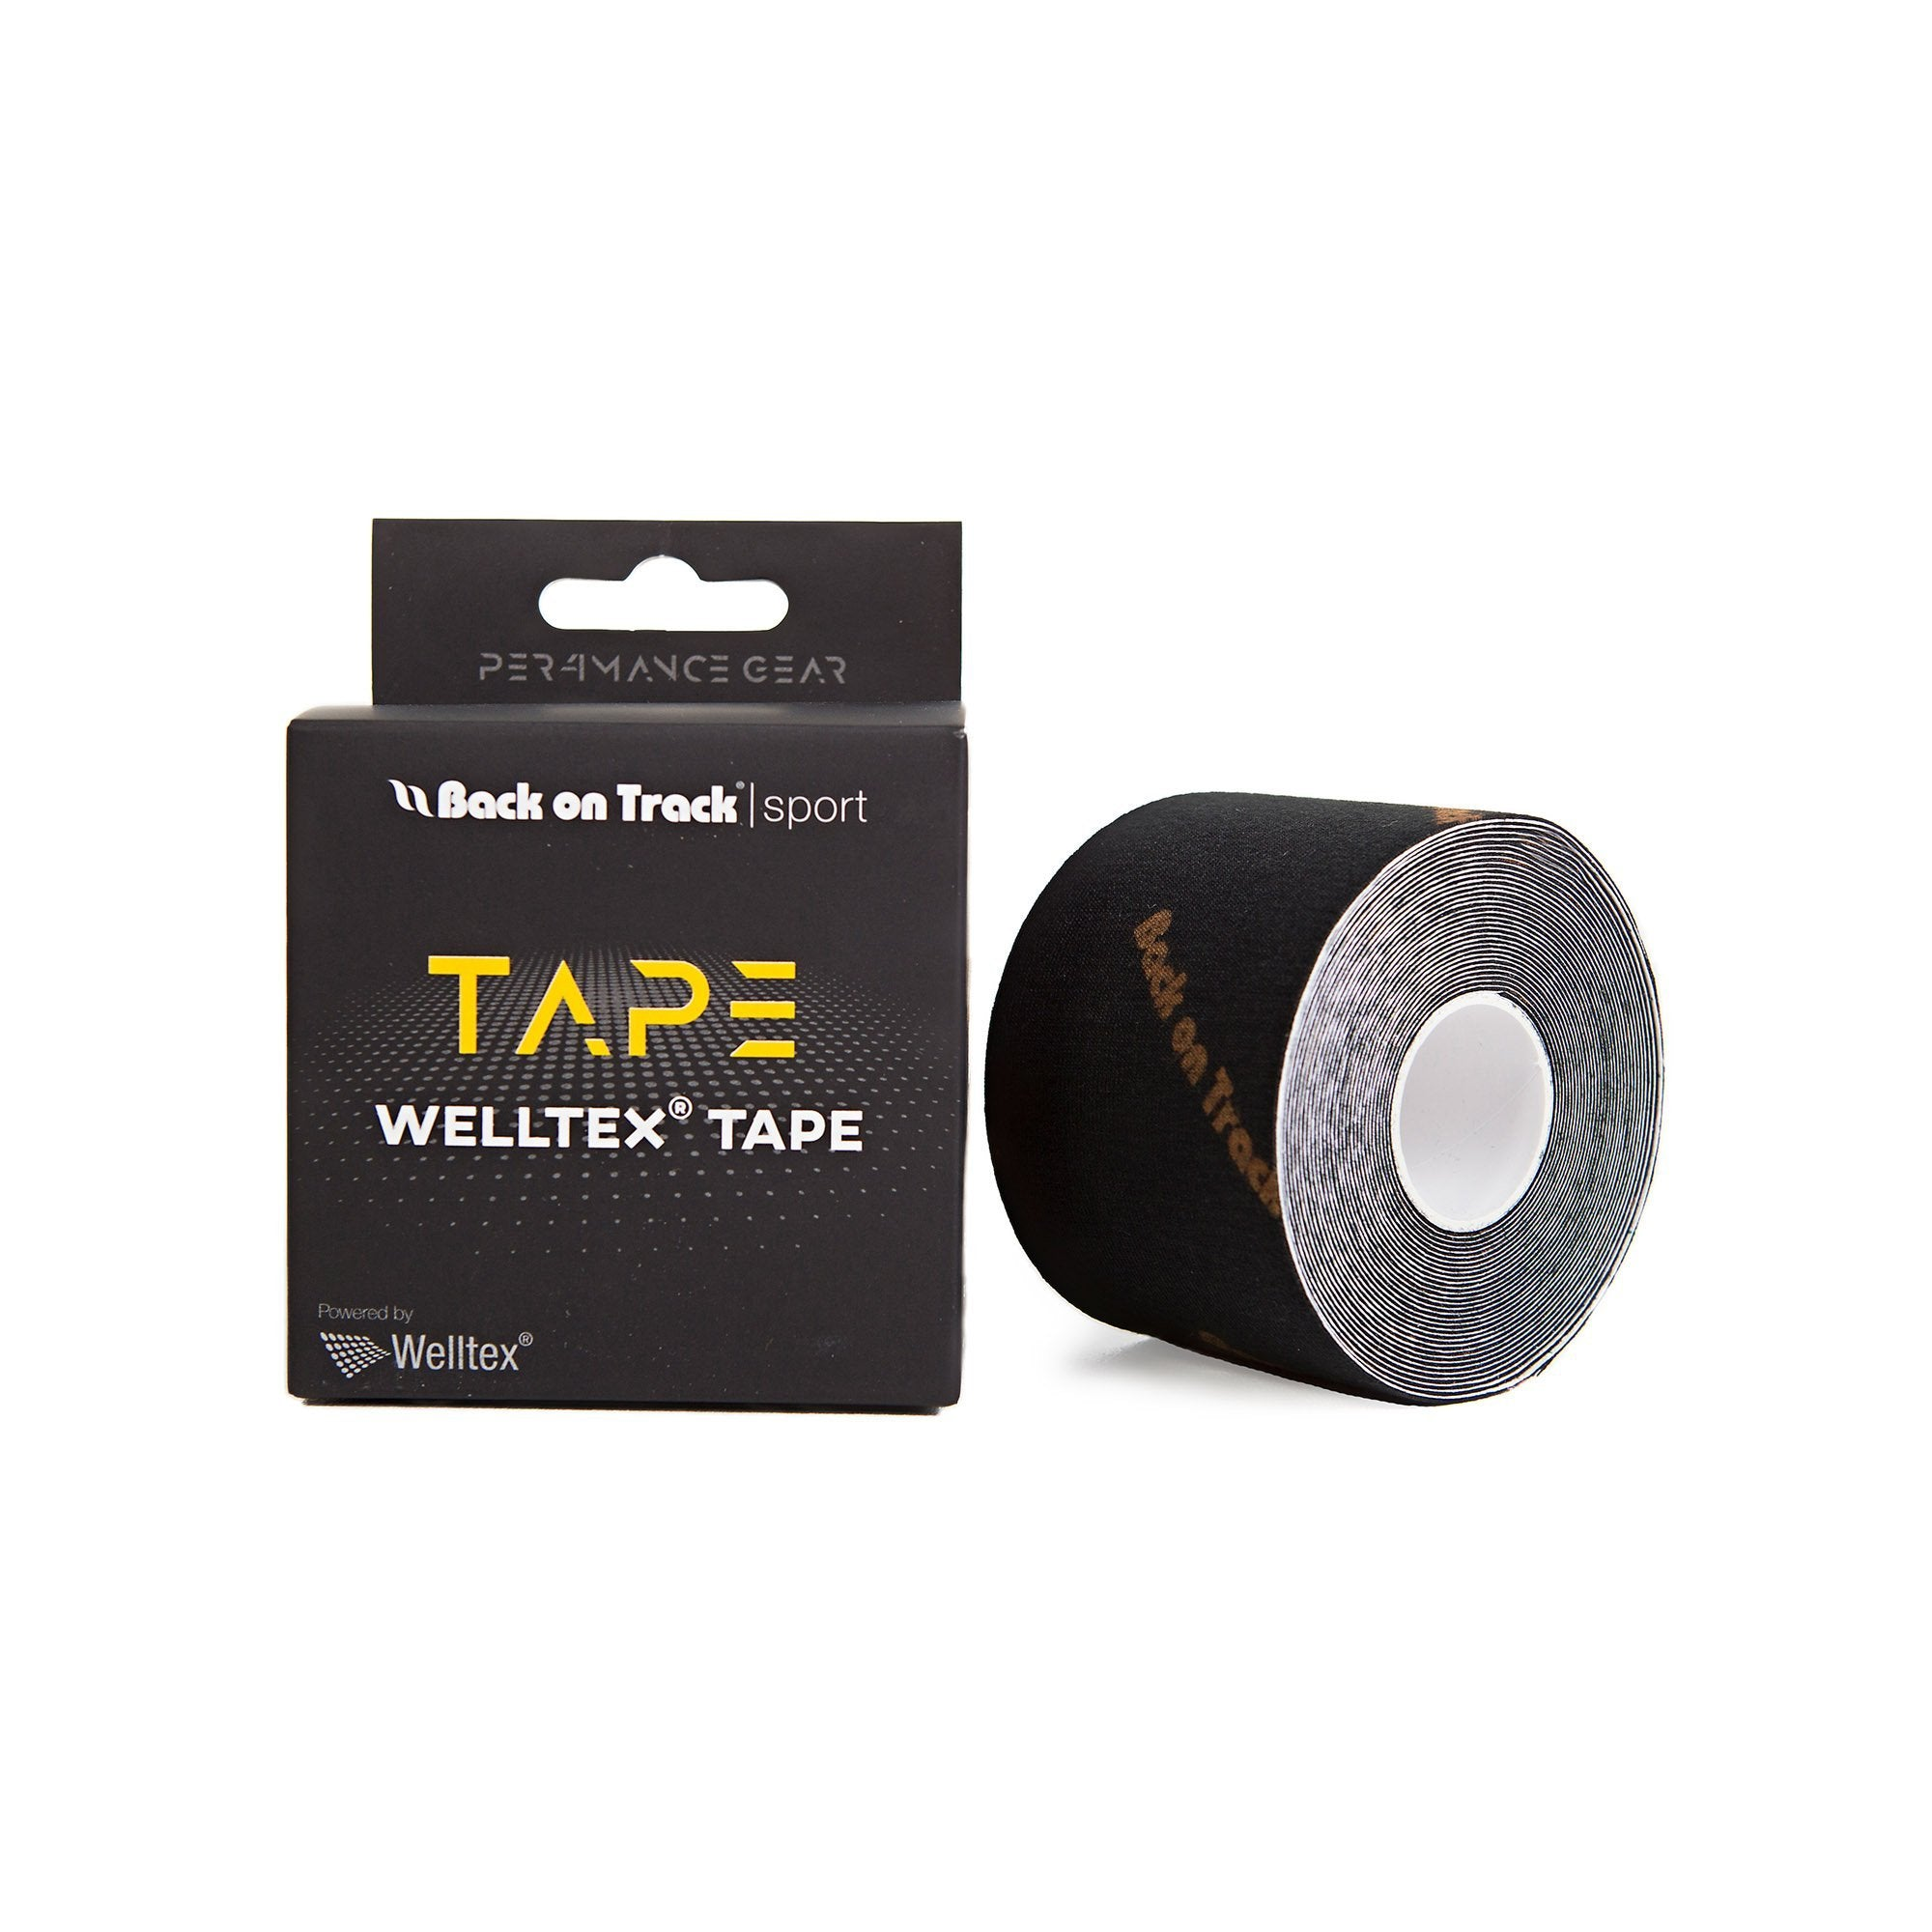 P4G Welltex Tape, Svart 5m - Back on Track Sverige (5300124287131)